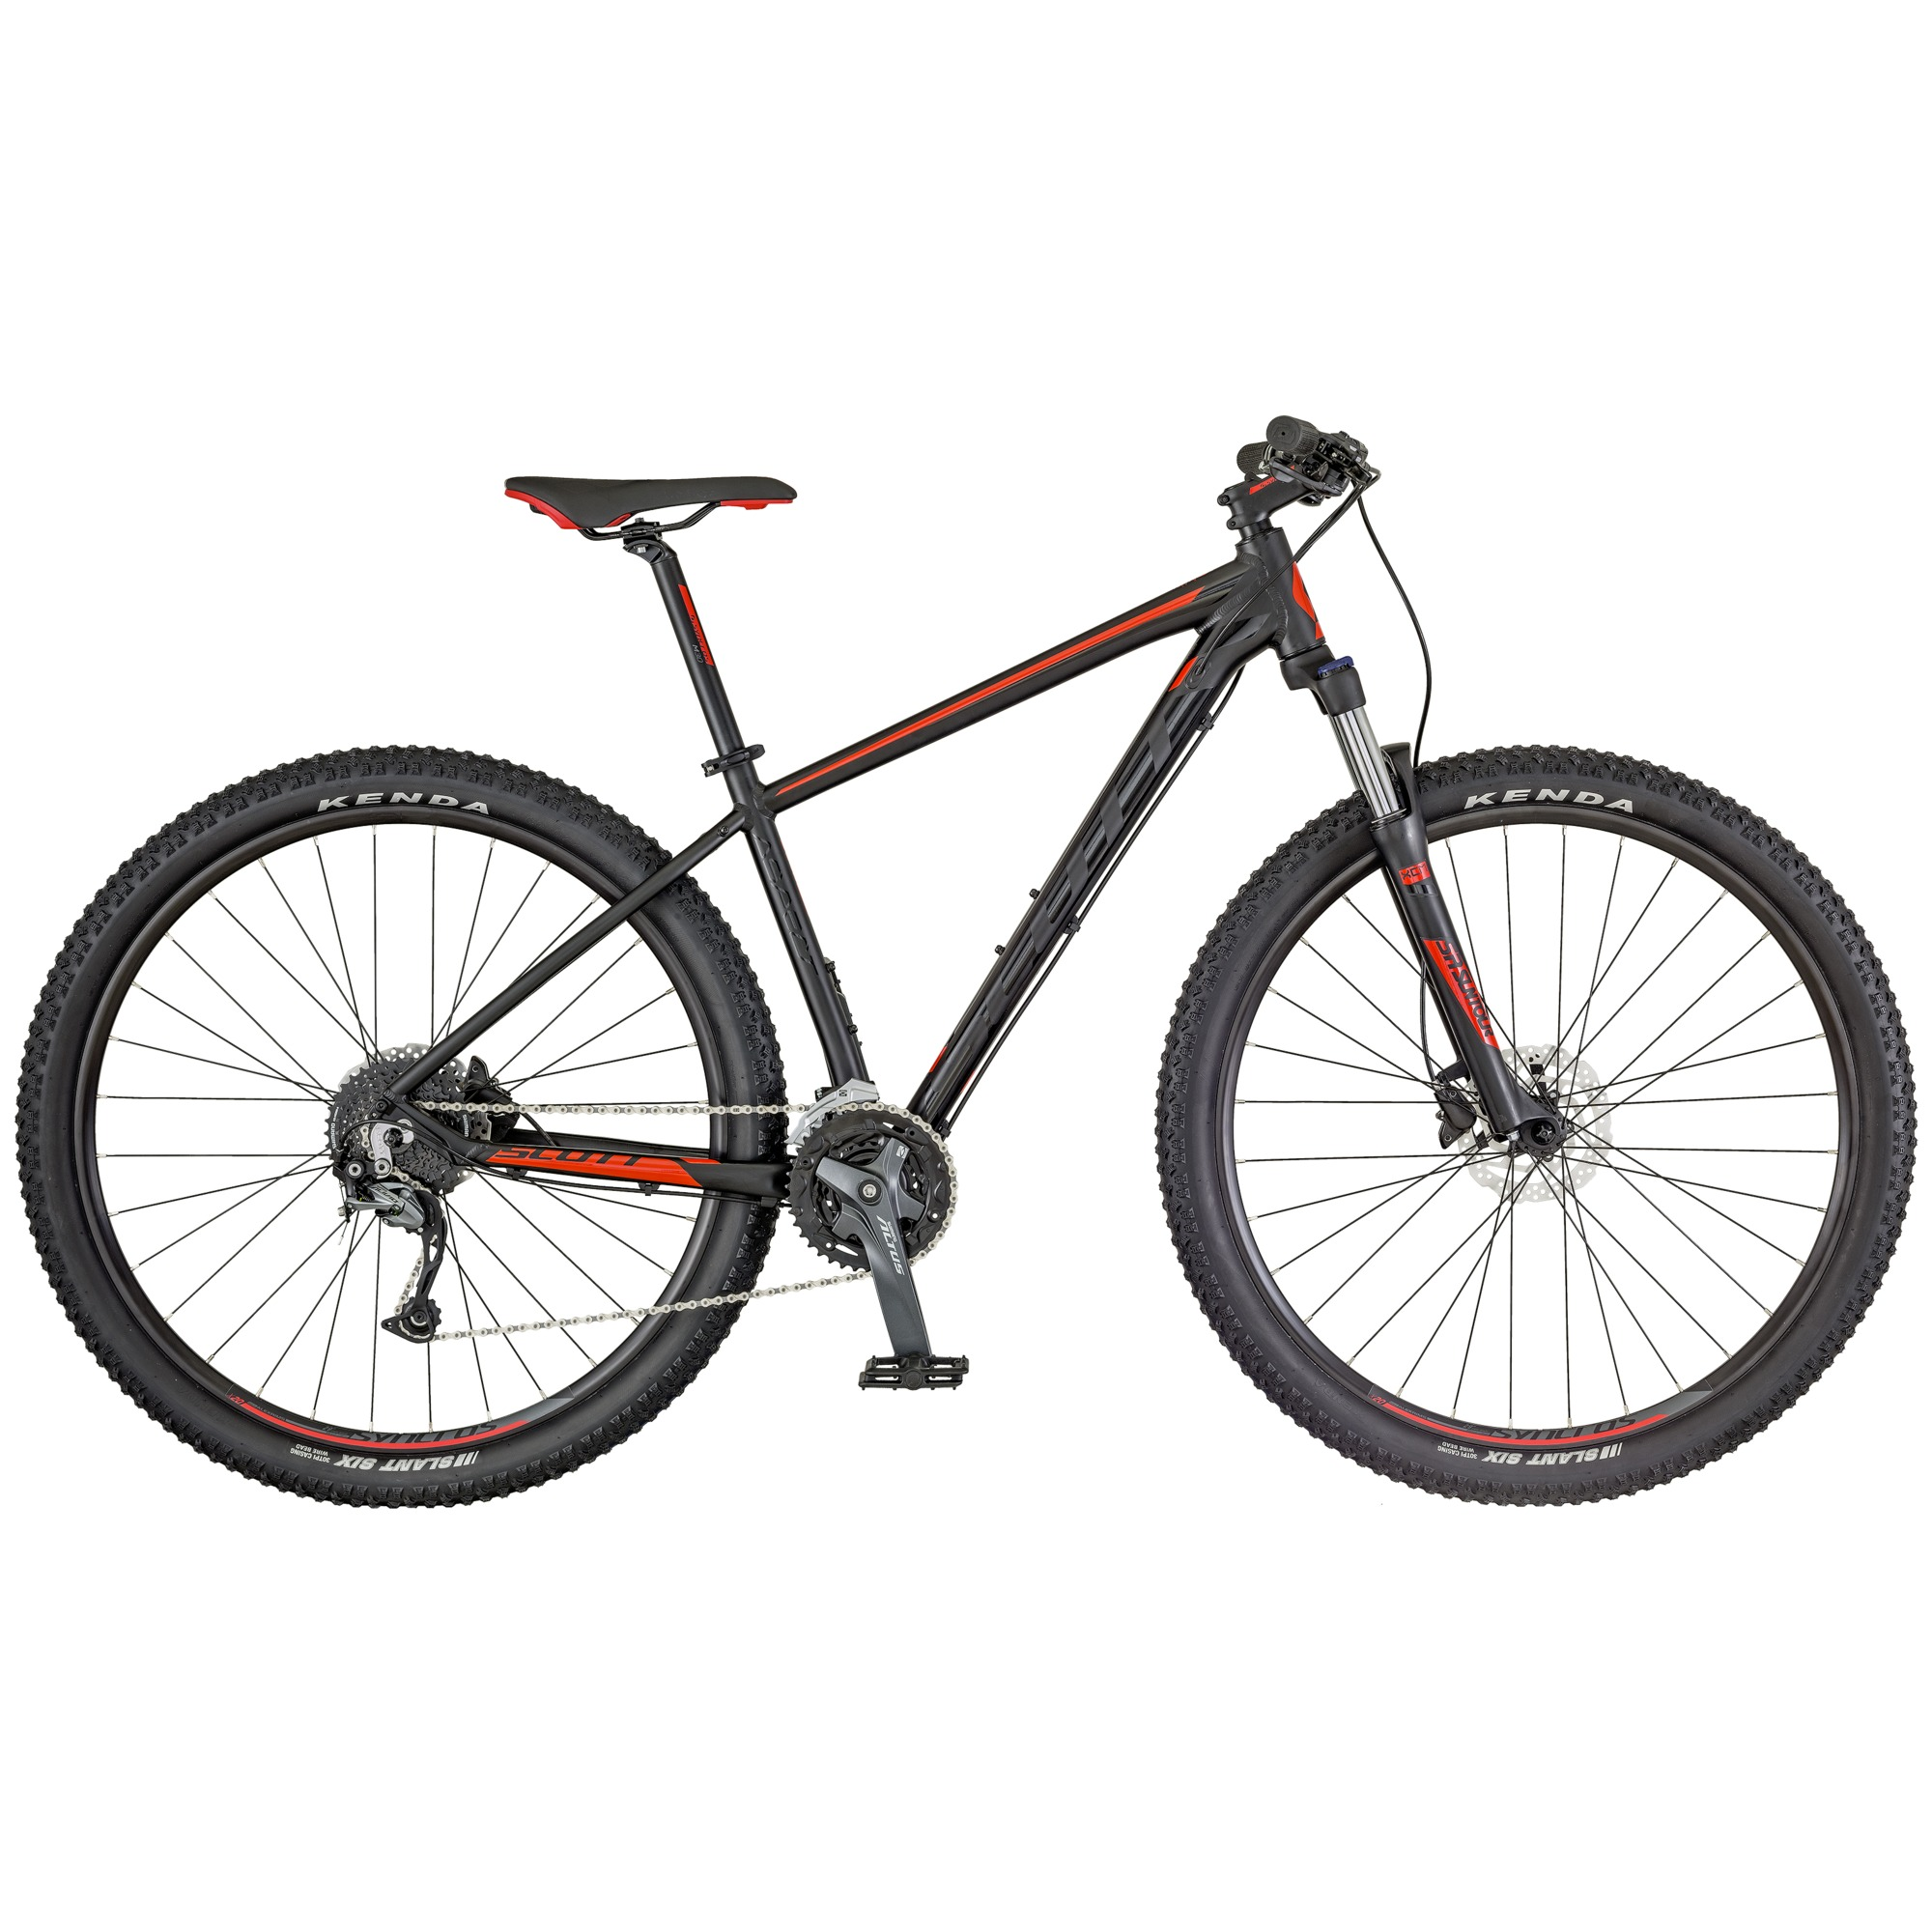 Scott 2018 Aspect 940 Bicycle Alloy Black, Red